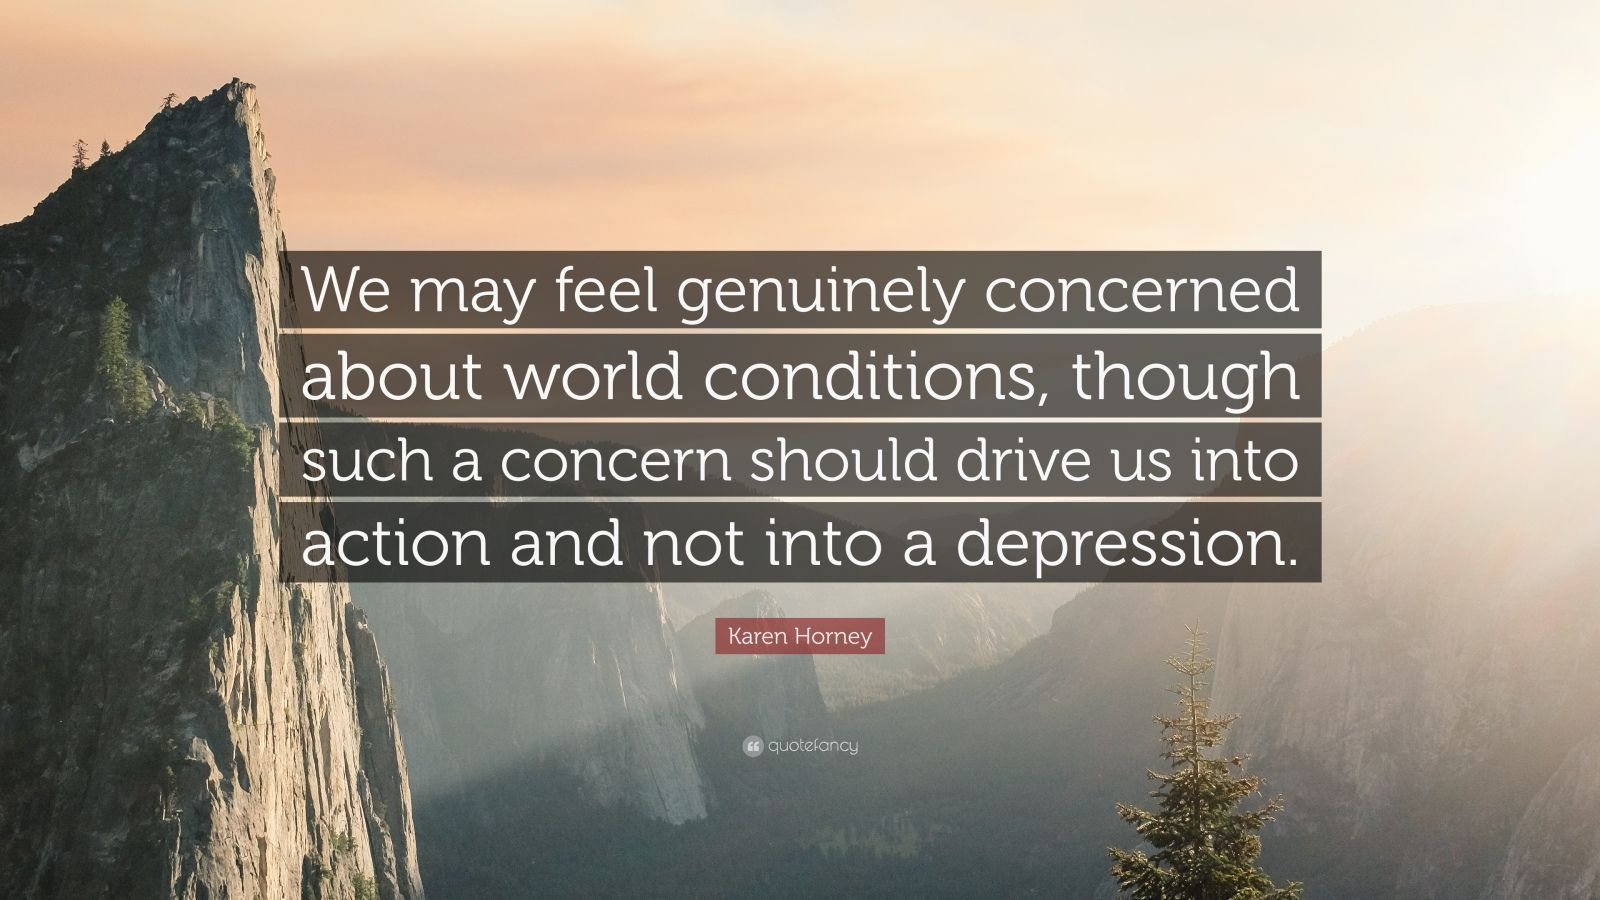 """Karen Horney Quote: """"We may feel genuinely concerned about world conditions, though such a concern should drive us into action and not into a depression."""""""